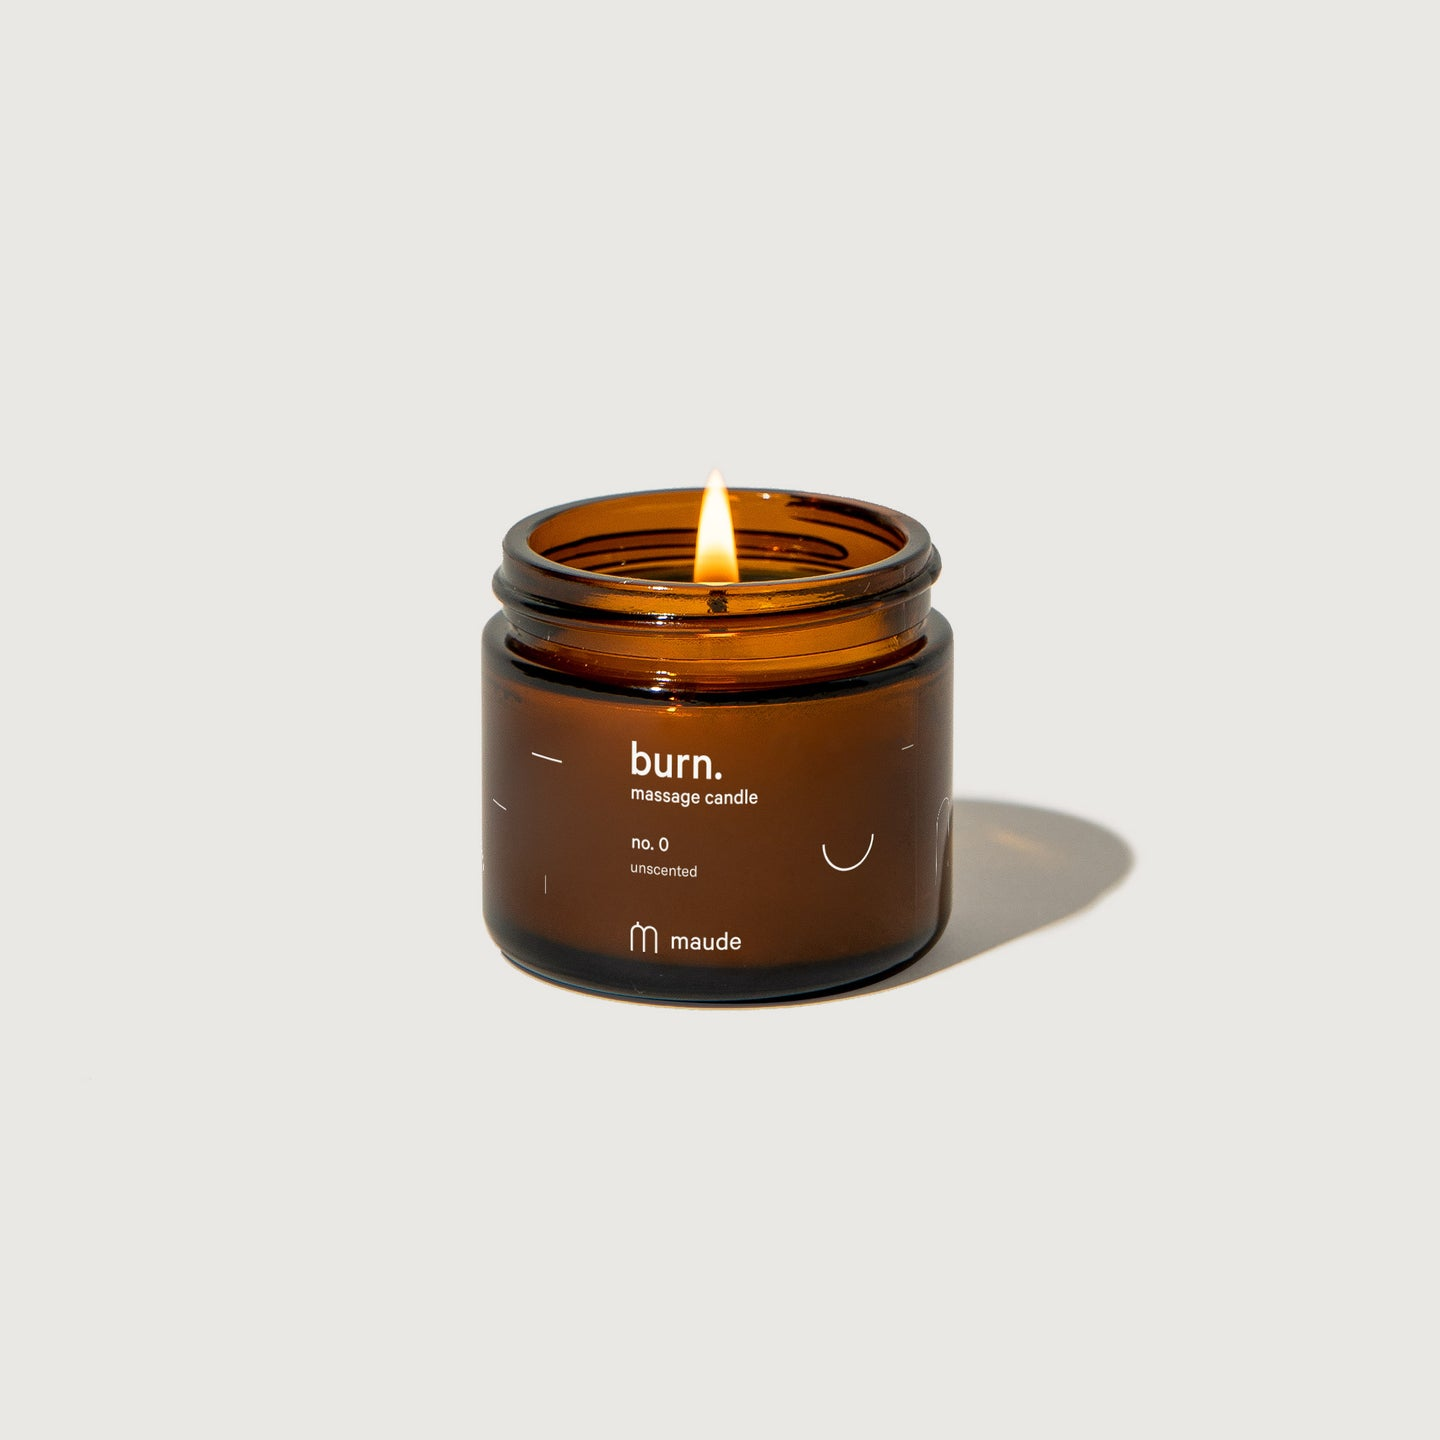 Maude Unscented Massage Candle